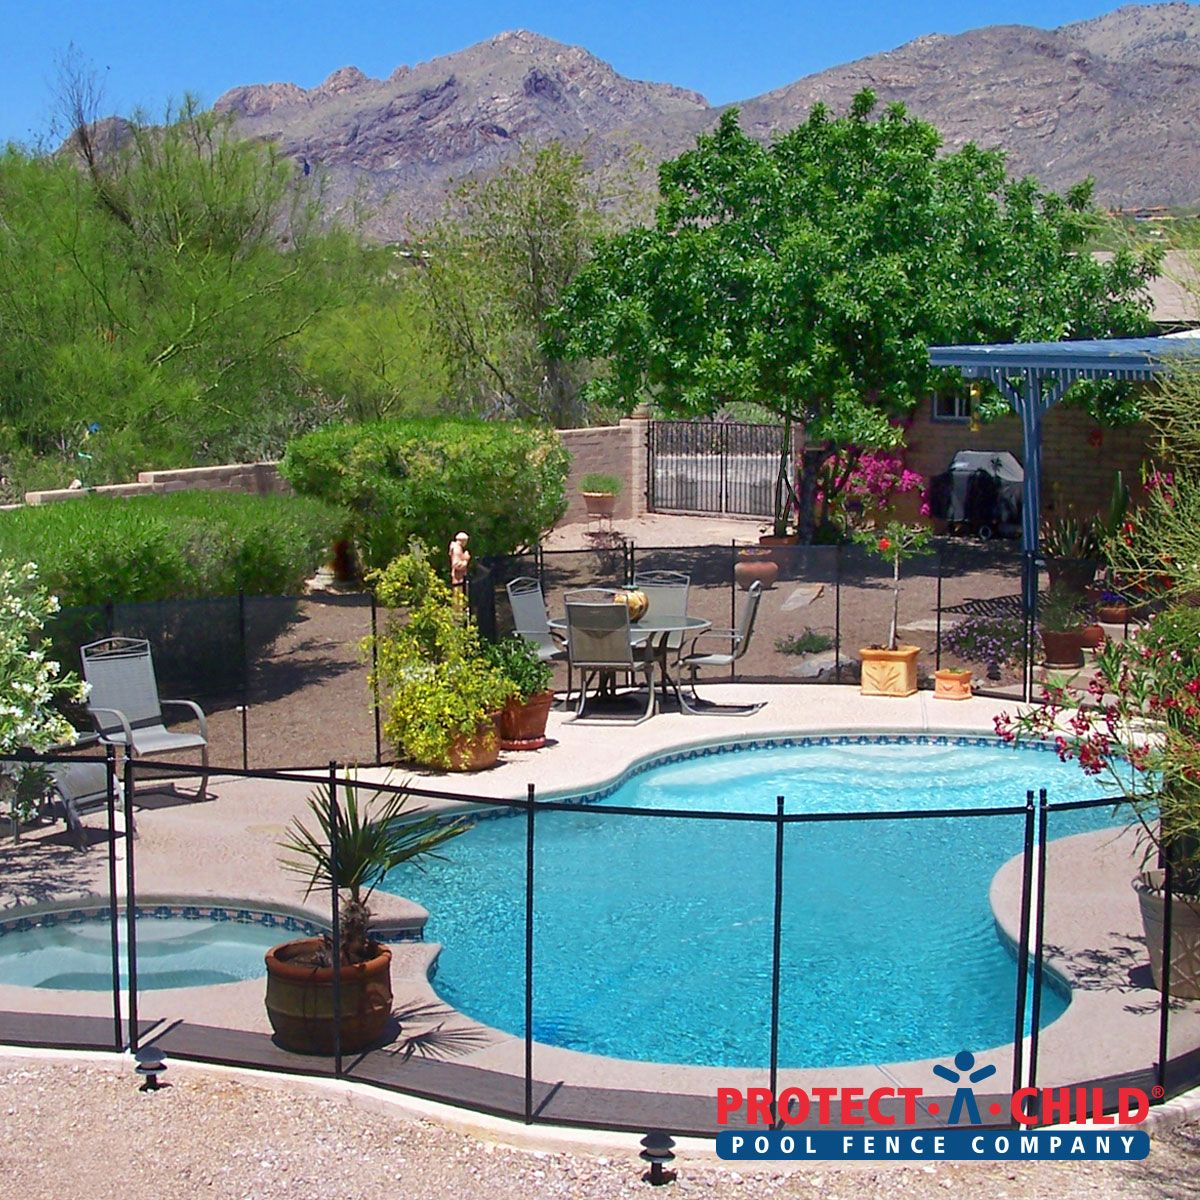 Pin by protectachild pool fence on beautiful pools